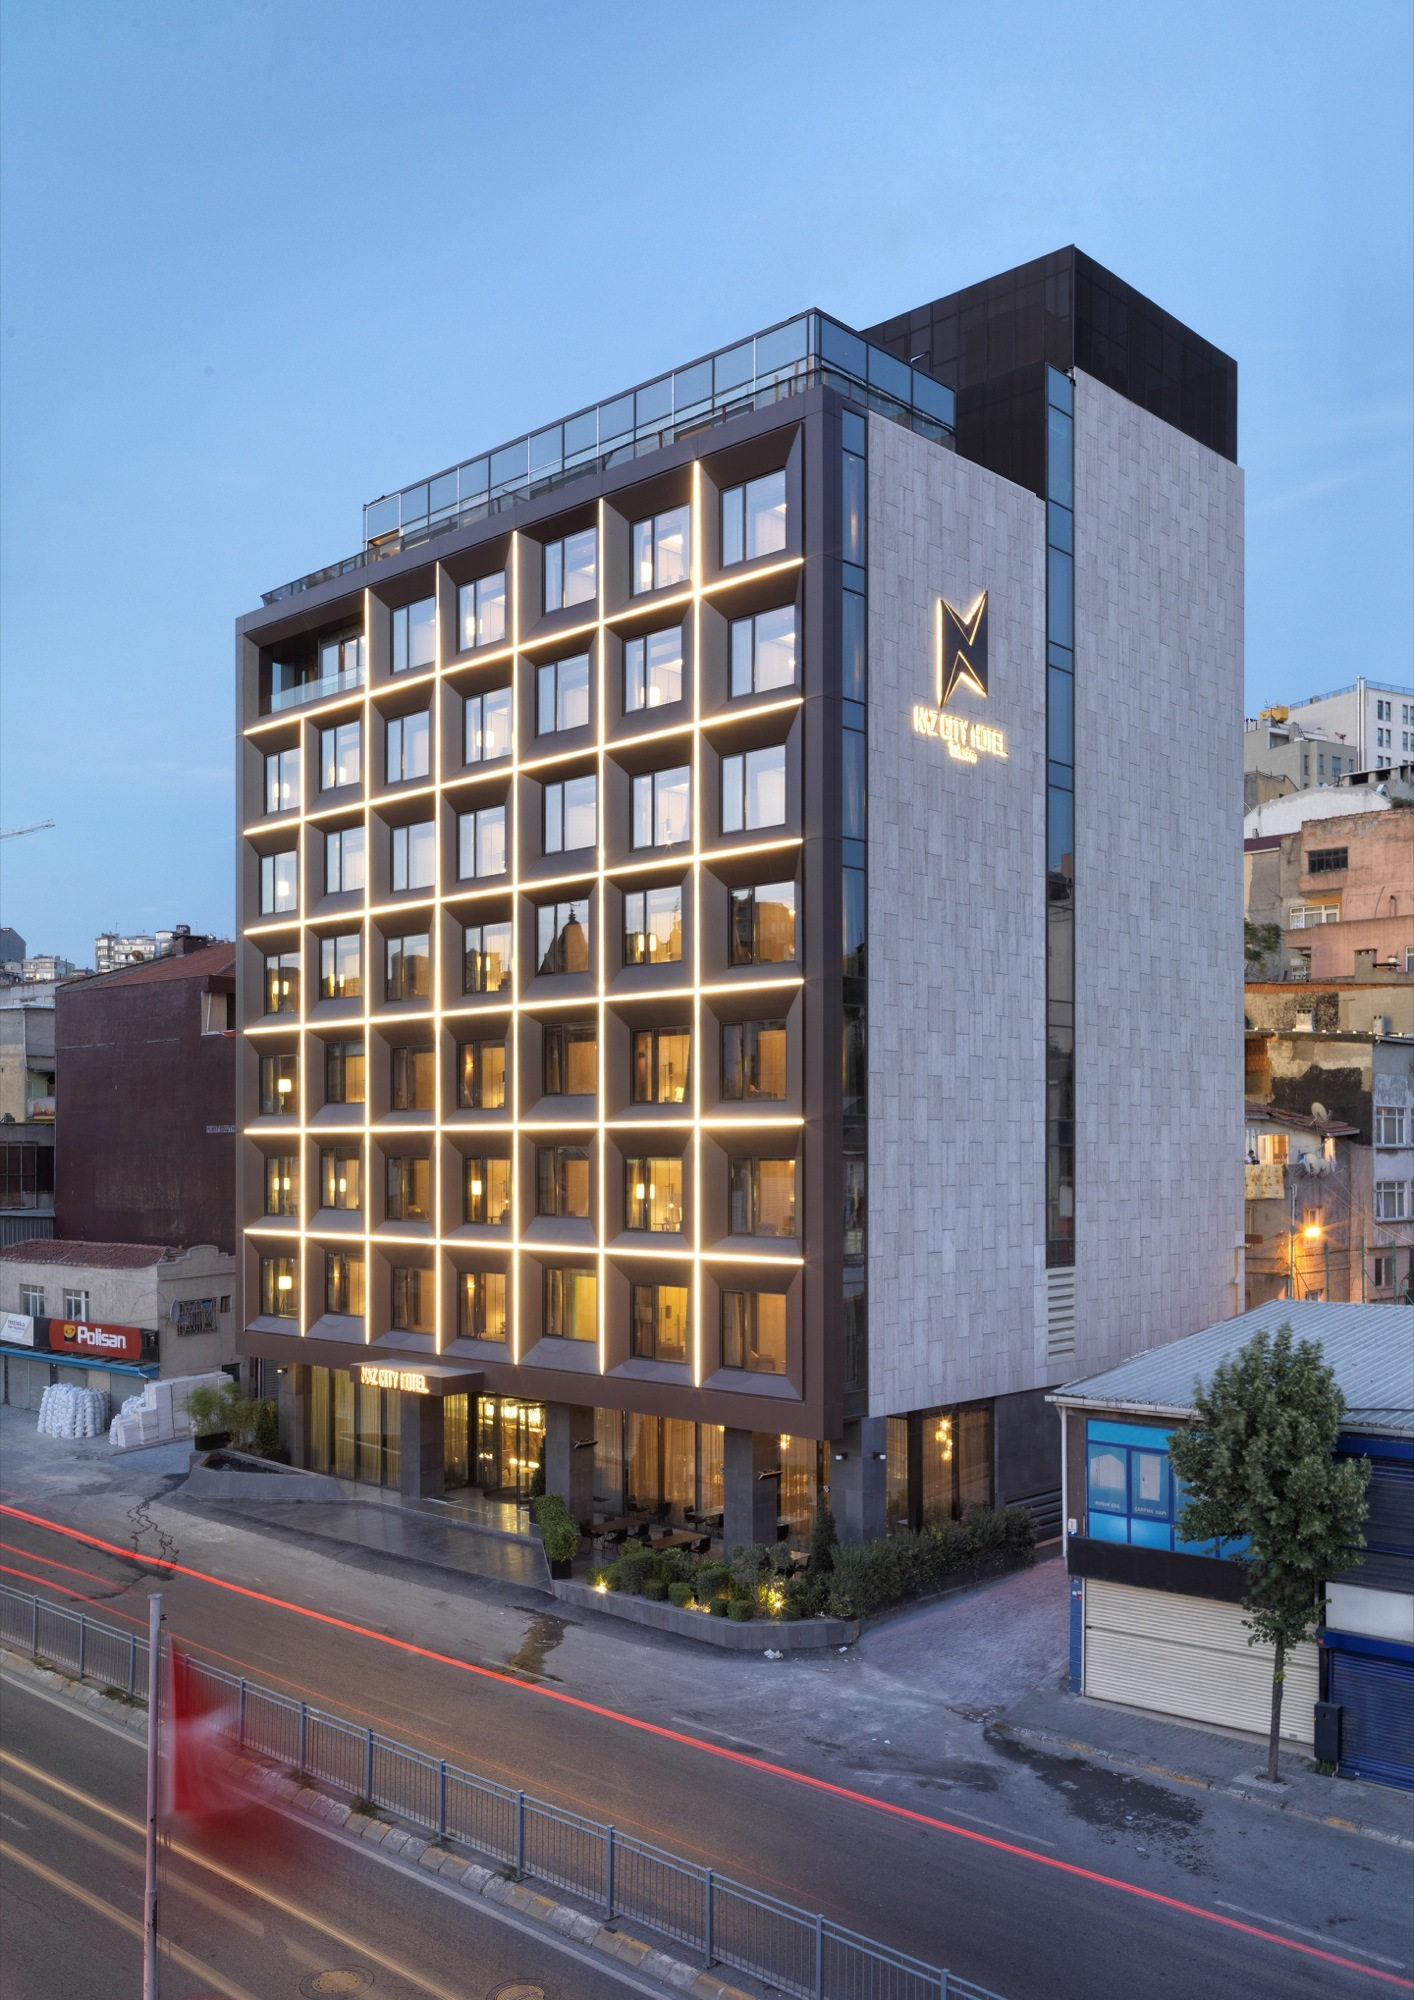 Naz city hotel taksim metex design group archdaily for Small design hotels